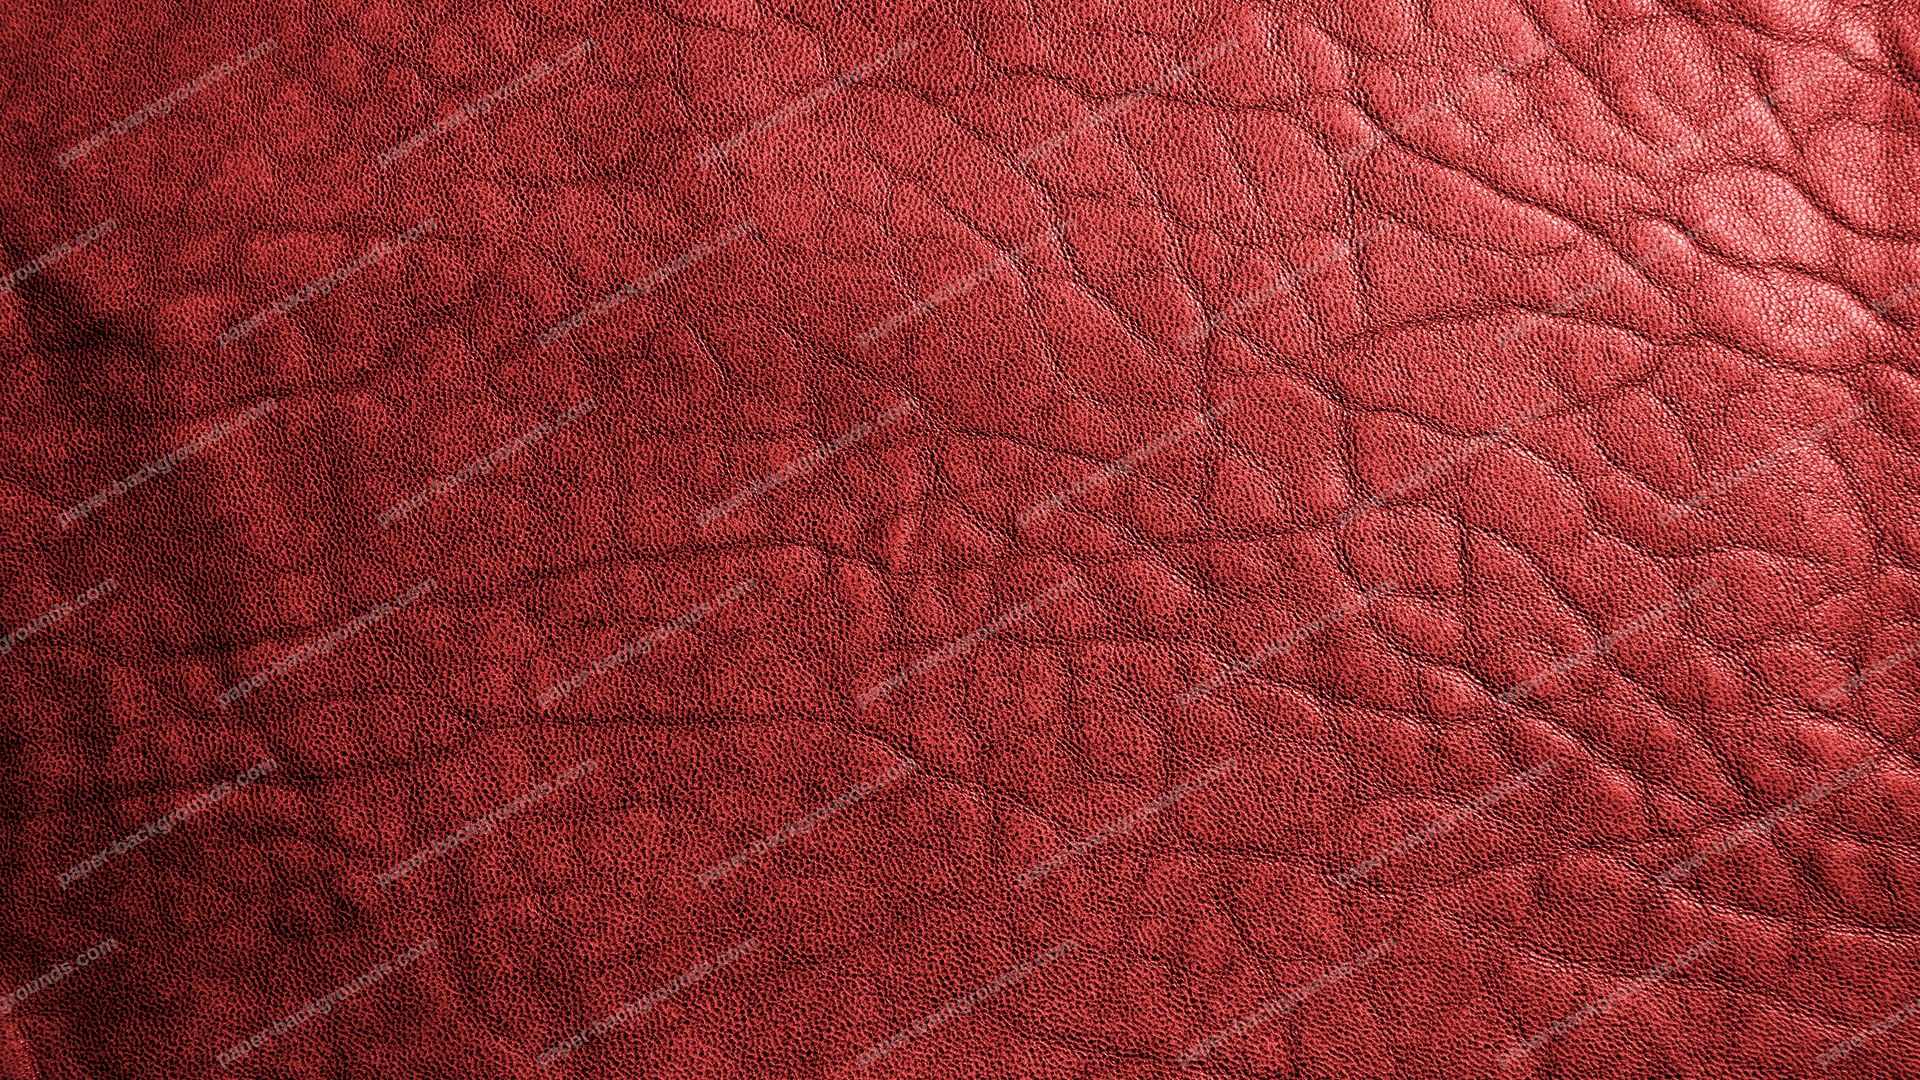 Red Leather Texture HD 1920 x 1080p